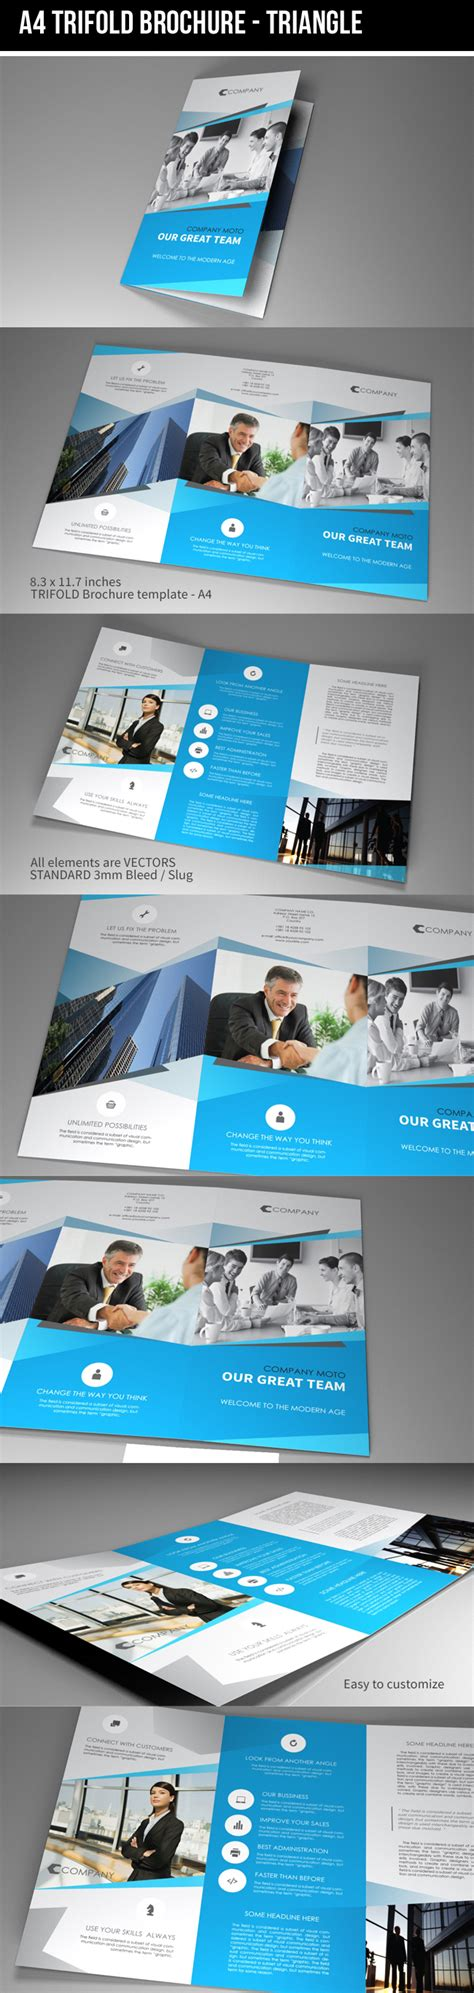 template indesign brochure a4 indesign template a4 trifold brochure triangle on behance